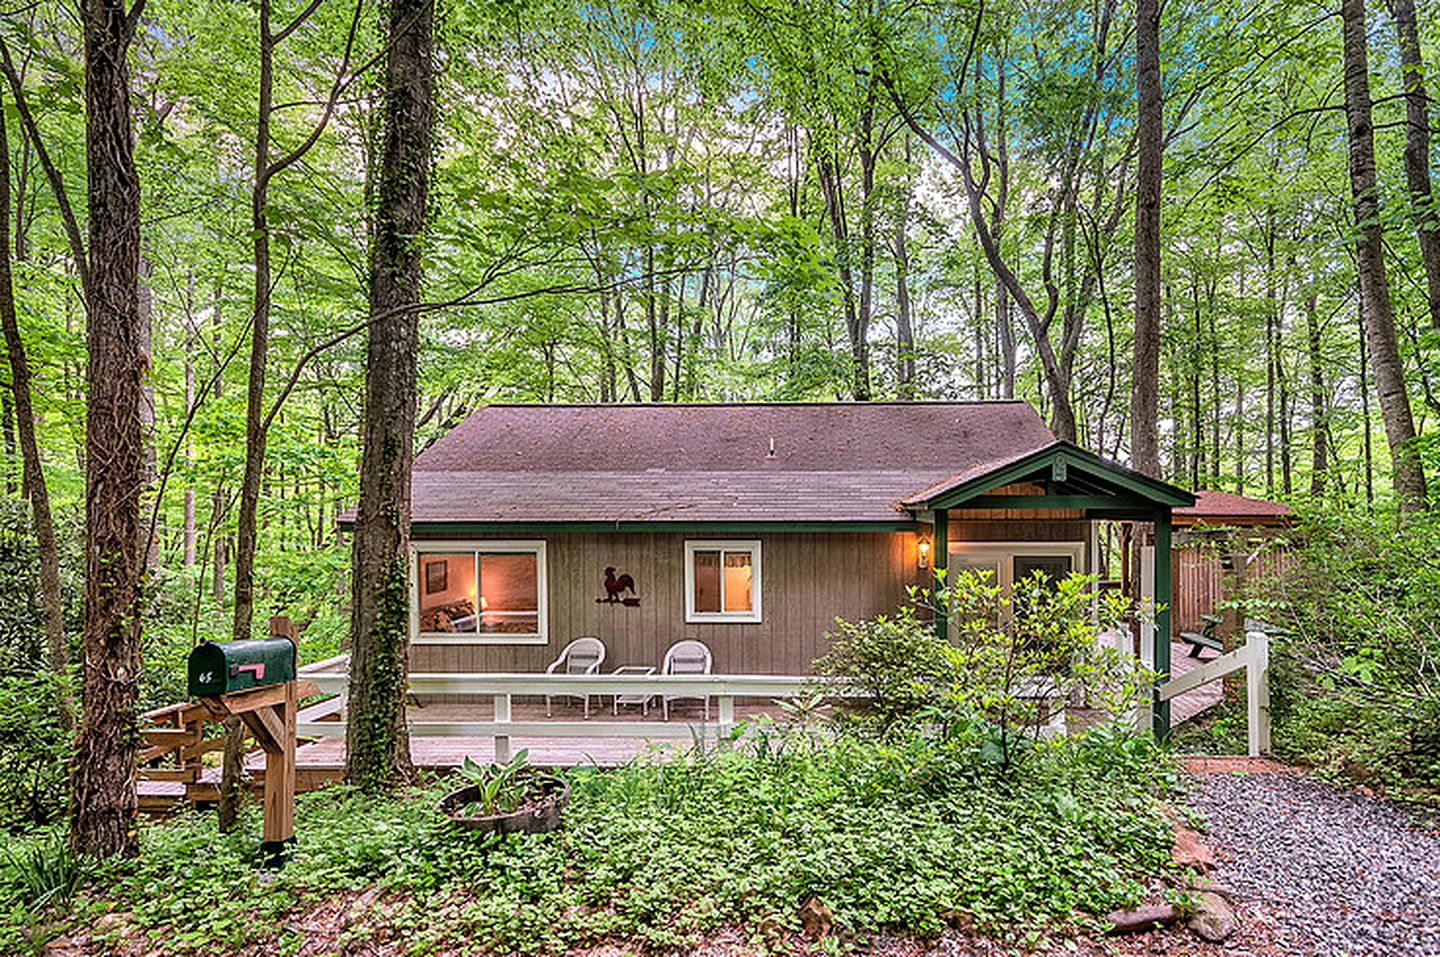 Cabin rental in the forest near Cherokee, North Carolina.